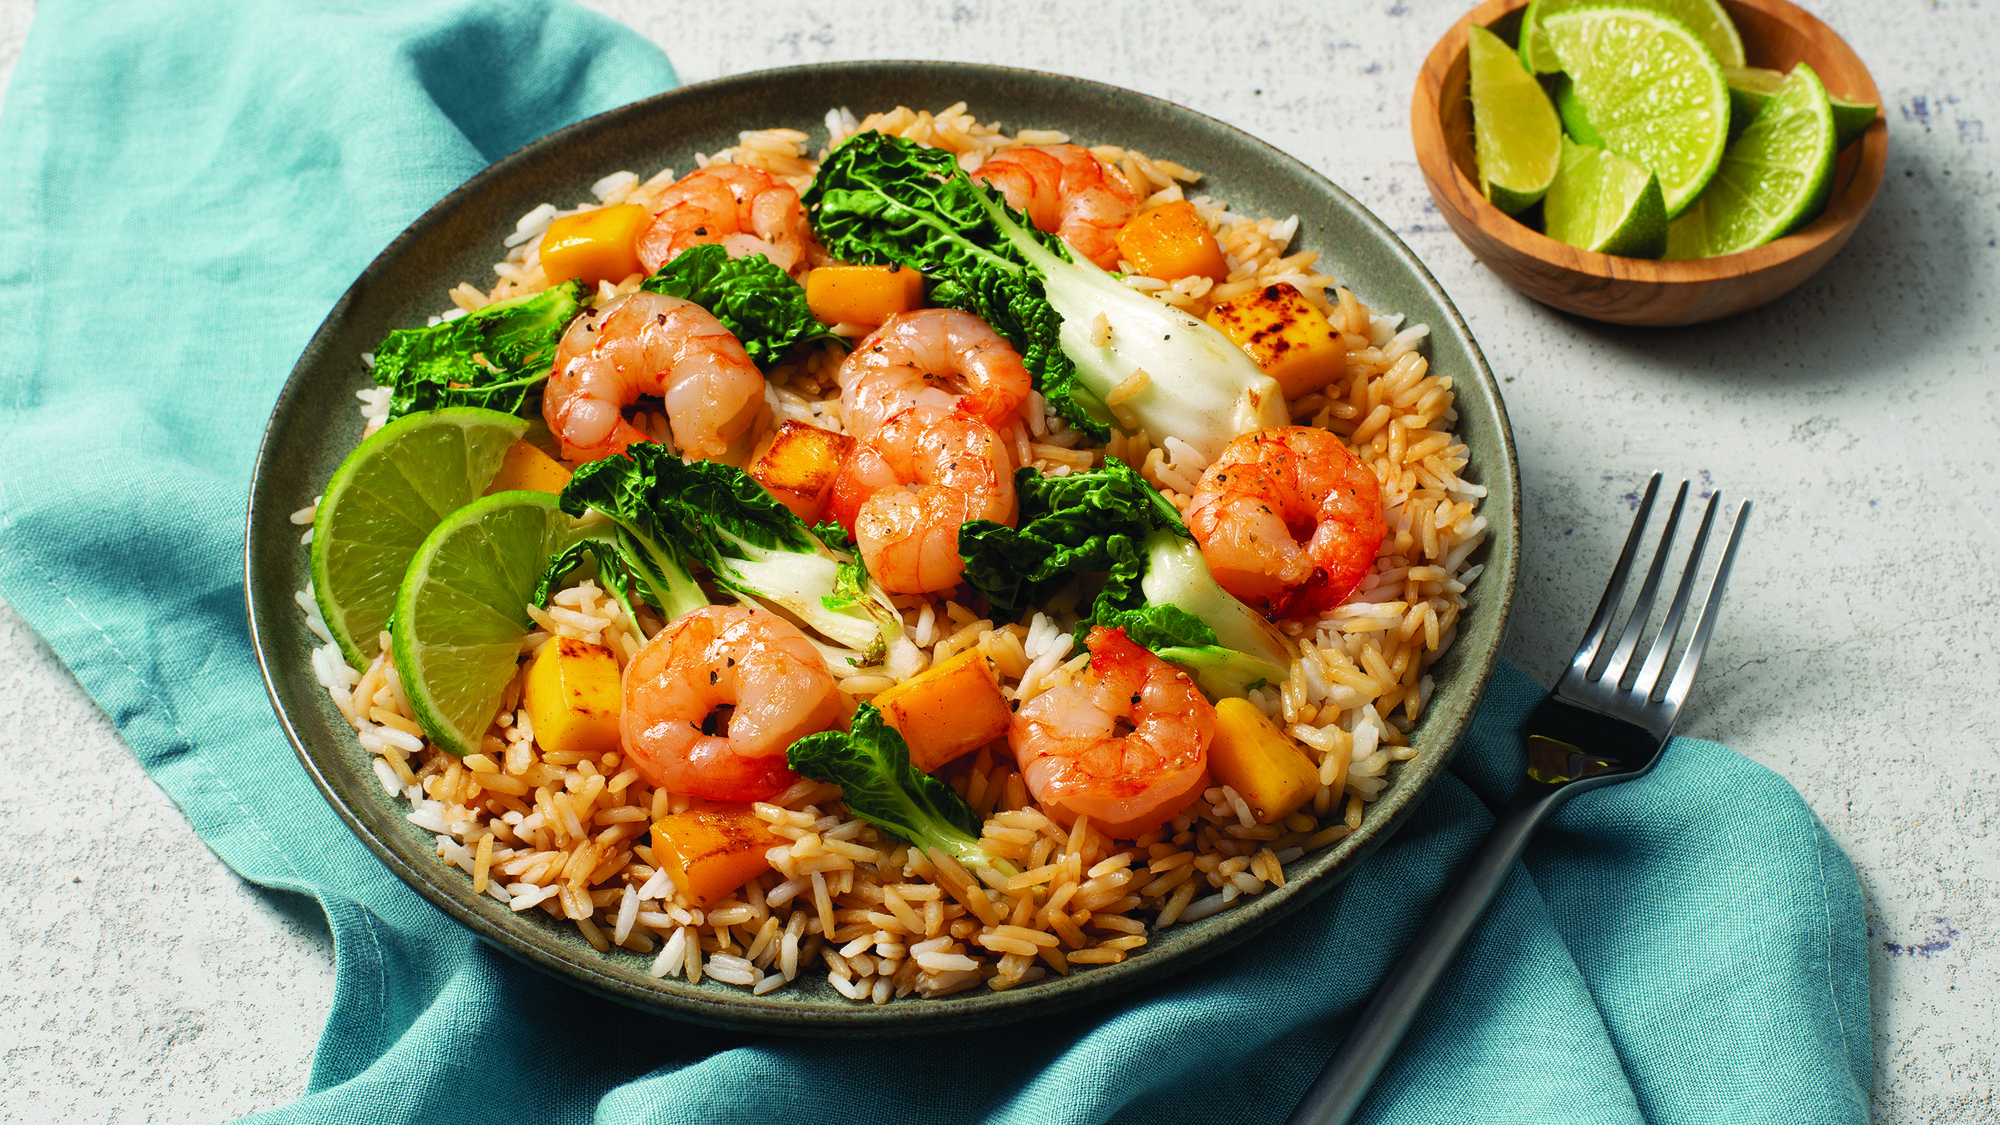 LIME-GINGER SHRIMP FRIED RICE